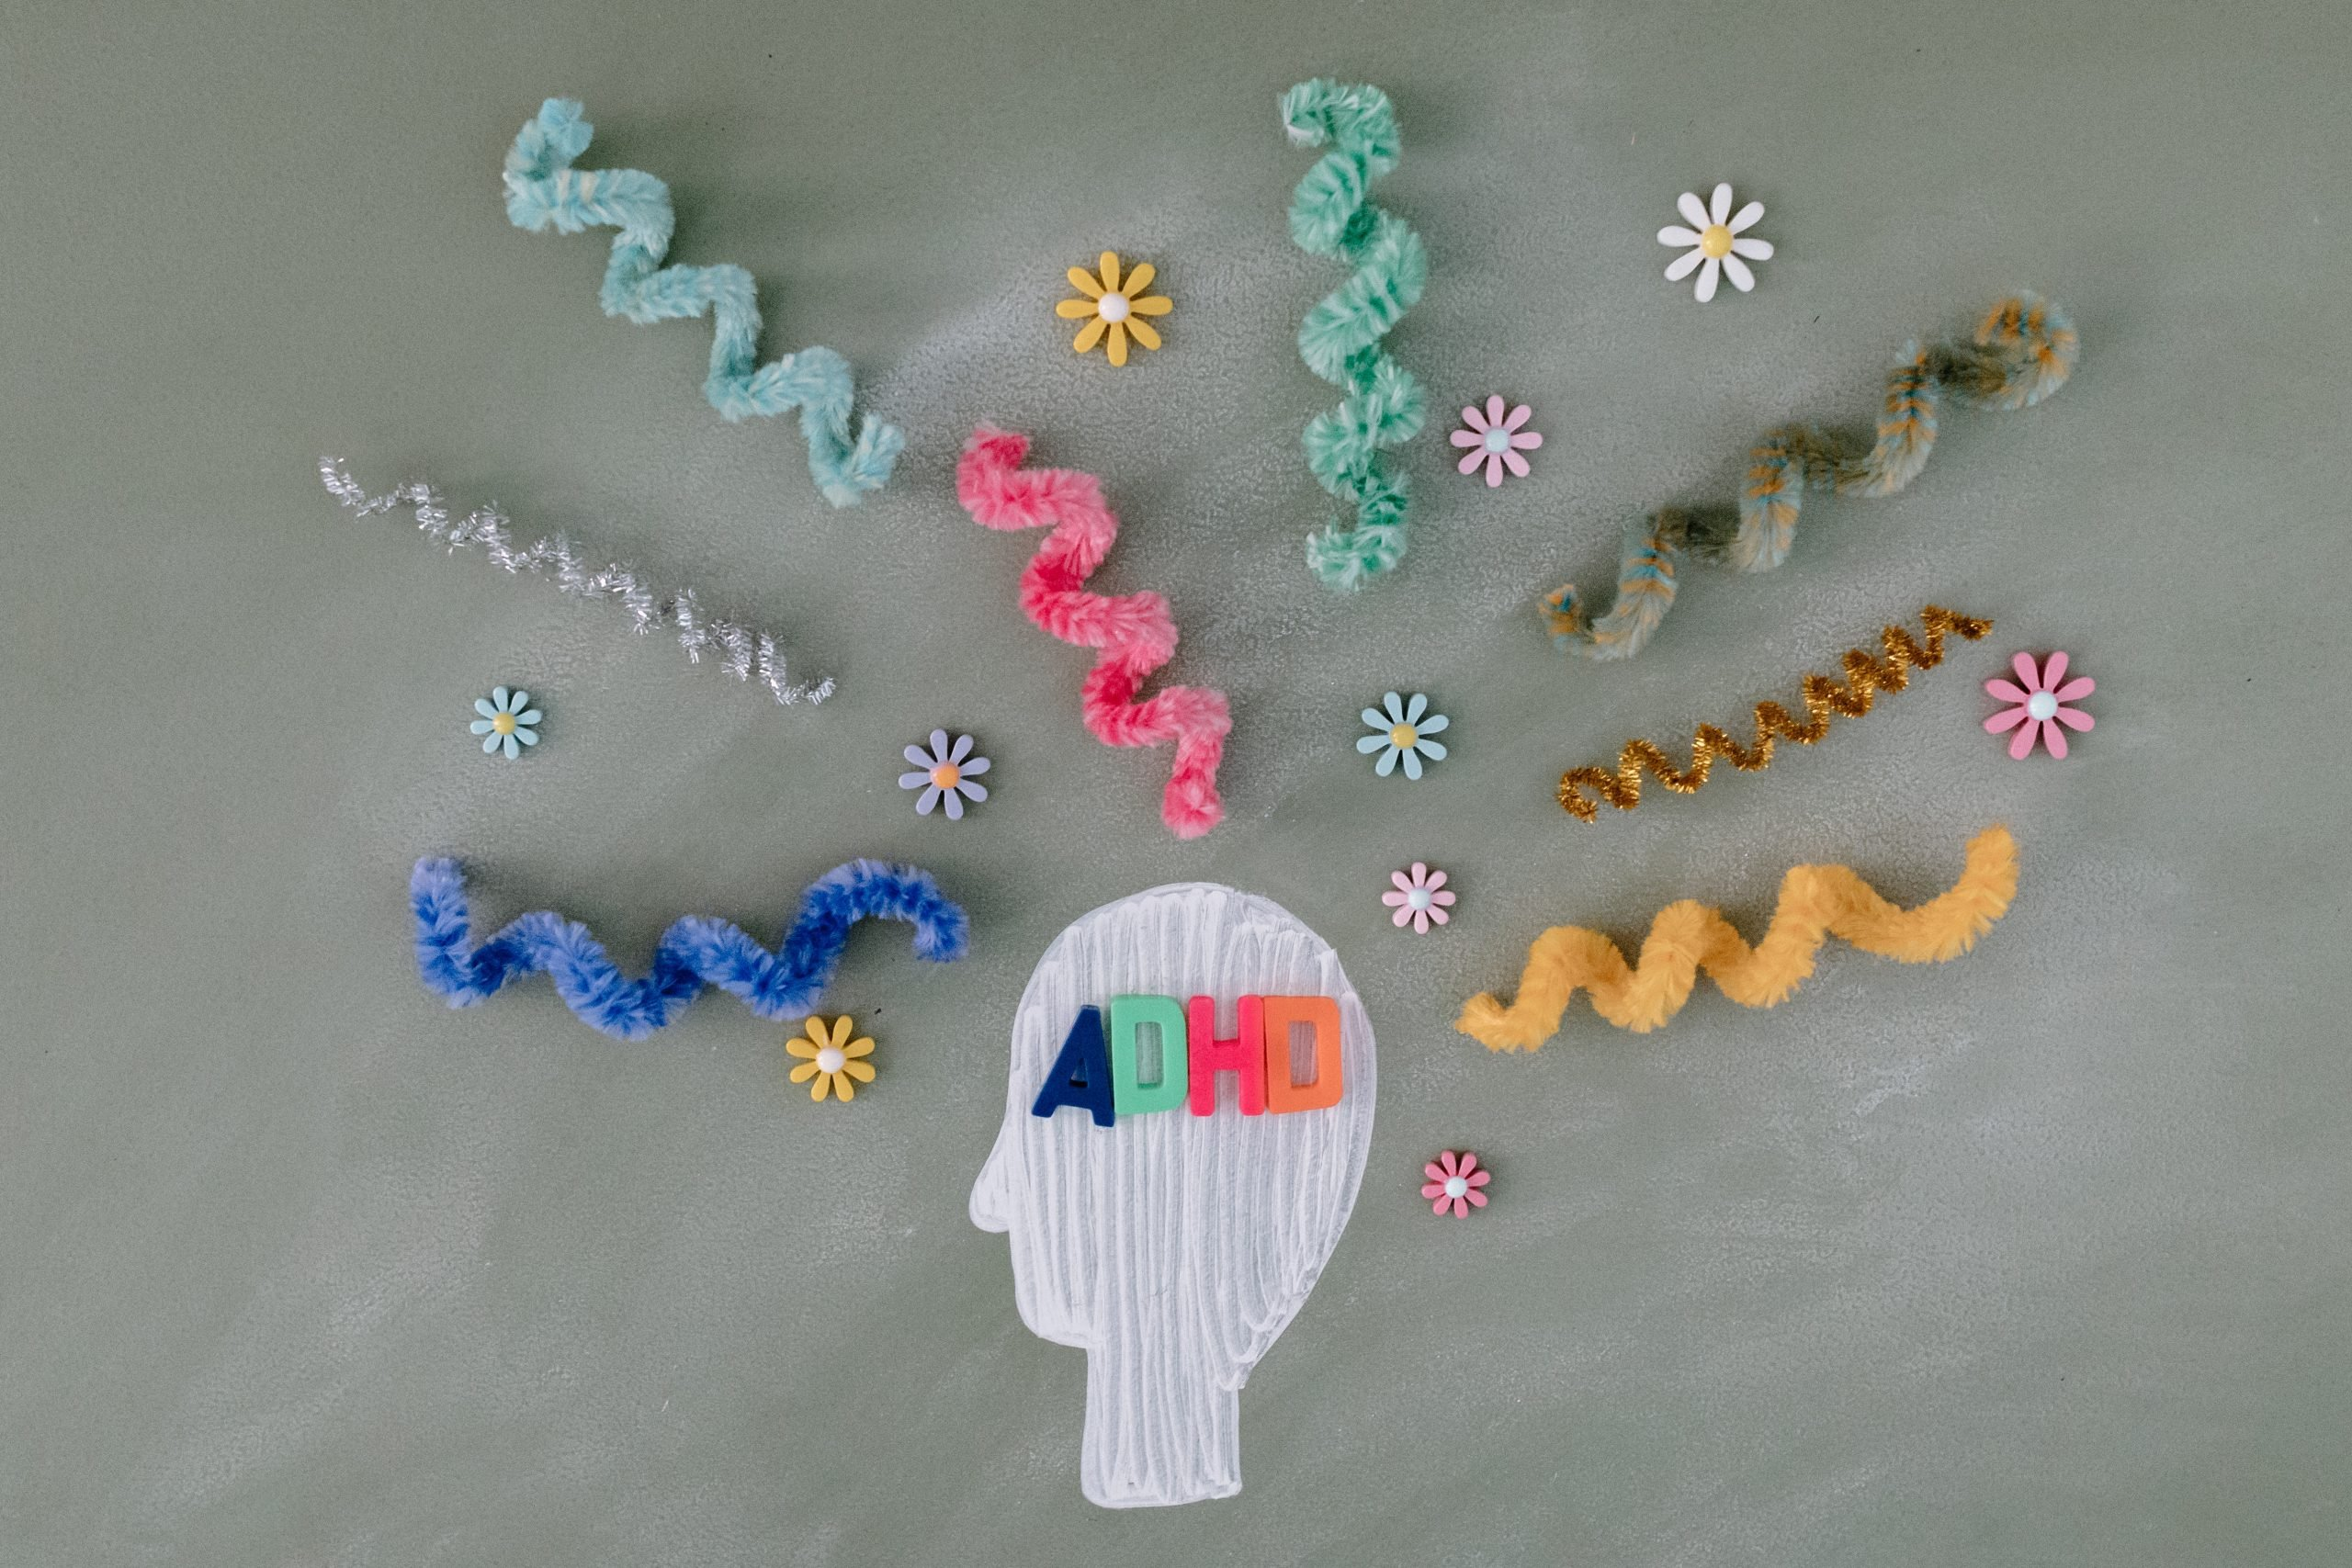 A craft illustration for adhd mind.